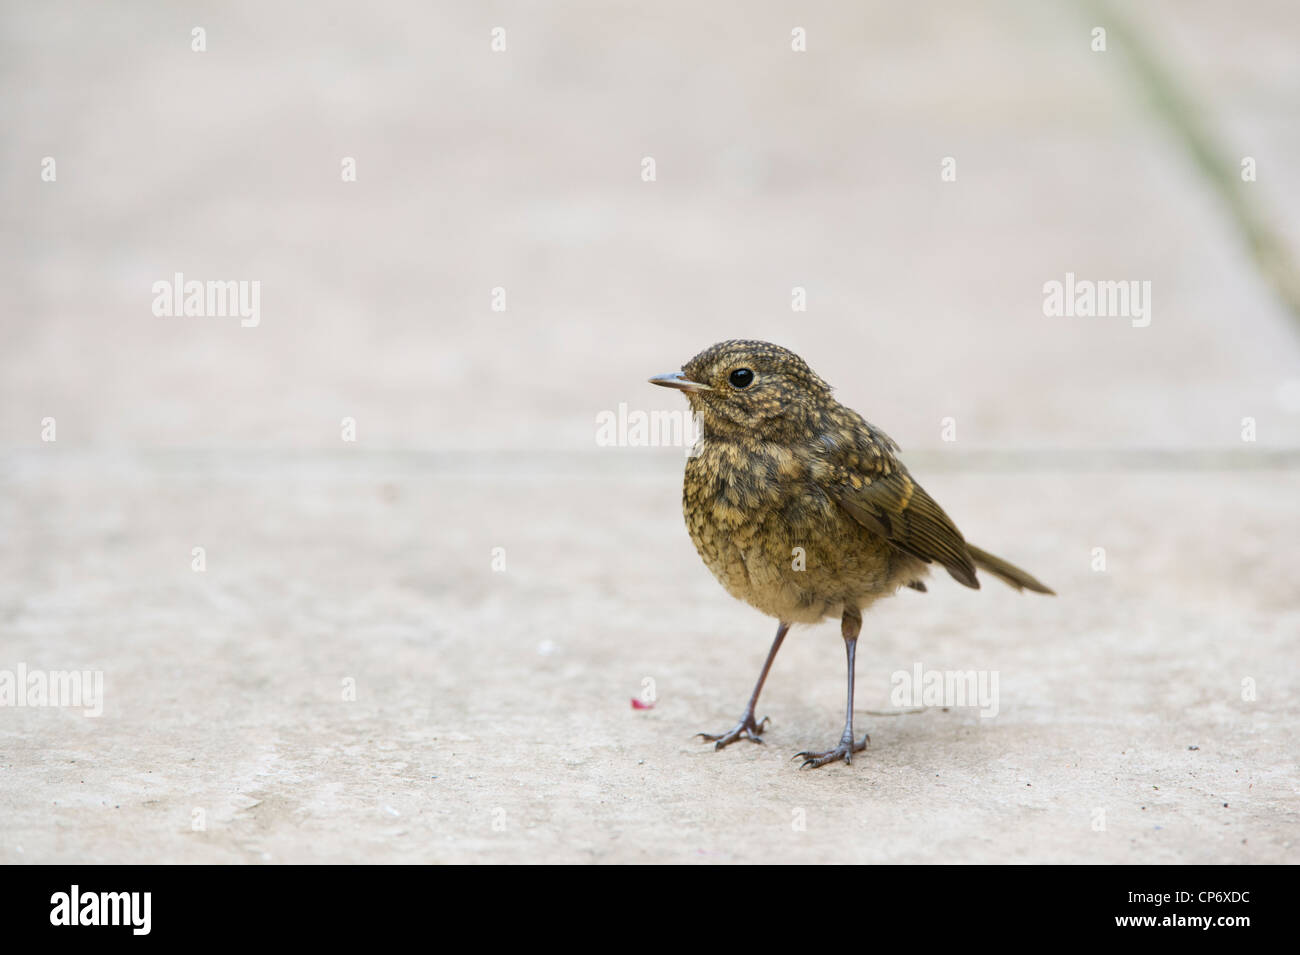 Fledged juvenile Robin on a garden path. UK Stock Photo